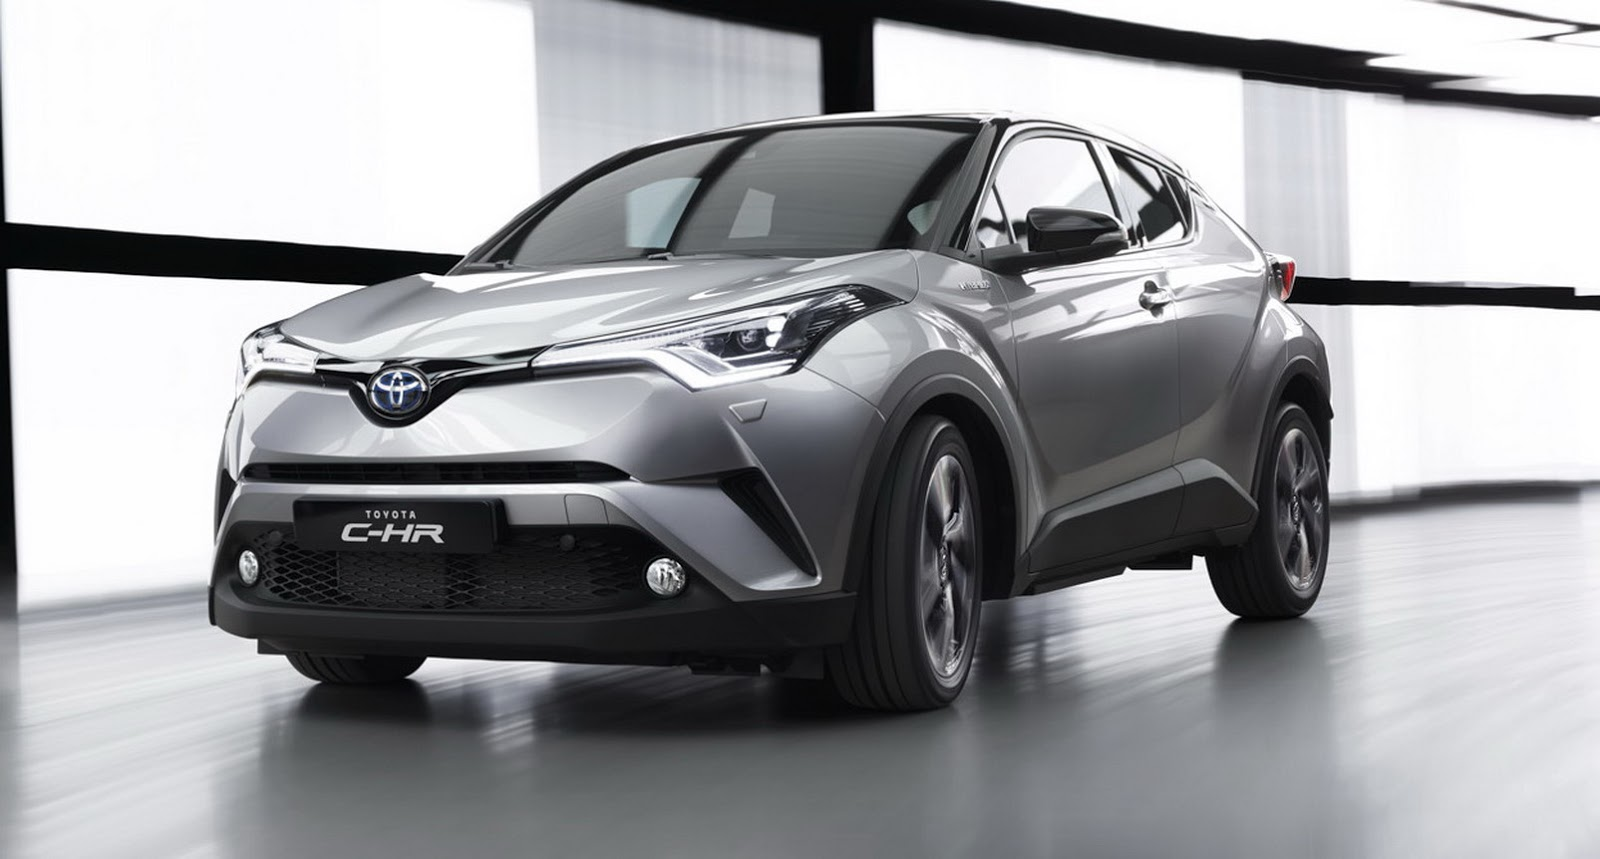 New Toyota C-HR Gets 1.2L Turbo, 2.0L And 1.8L Hybrid ...